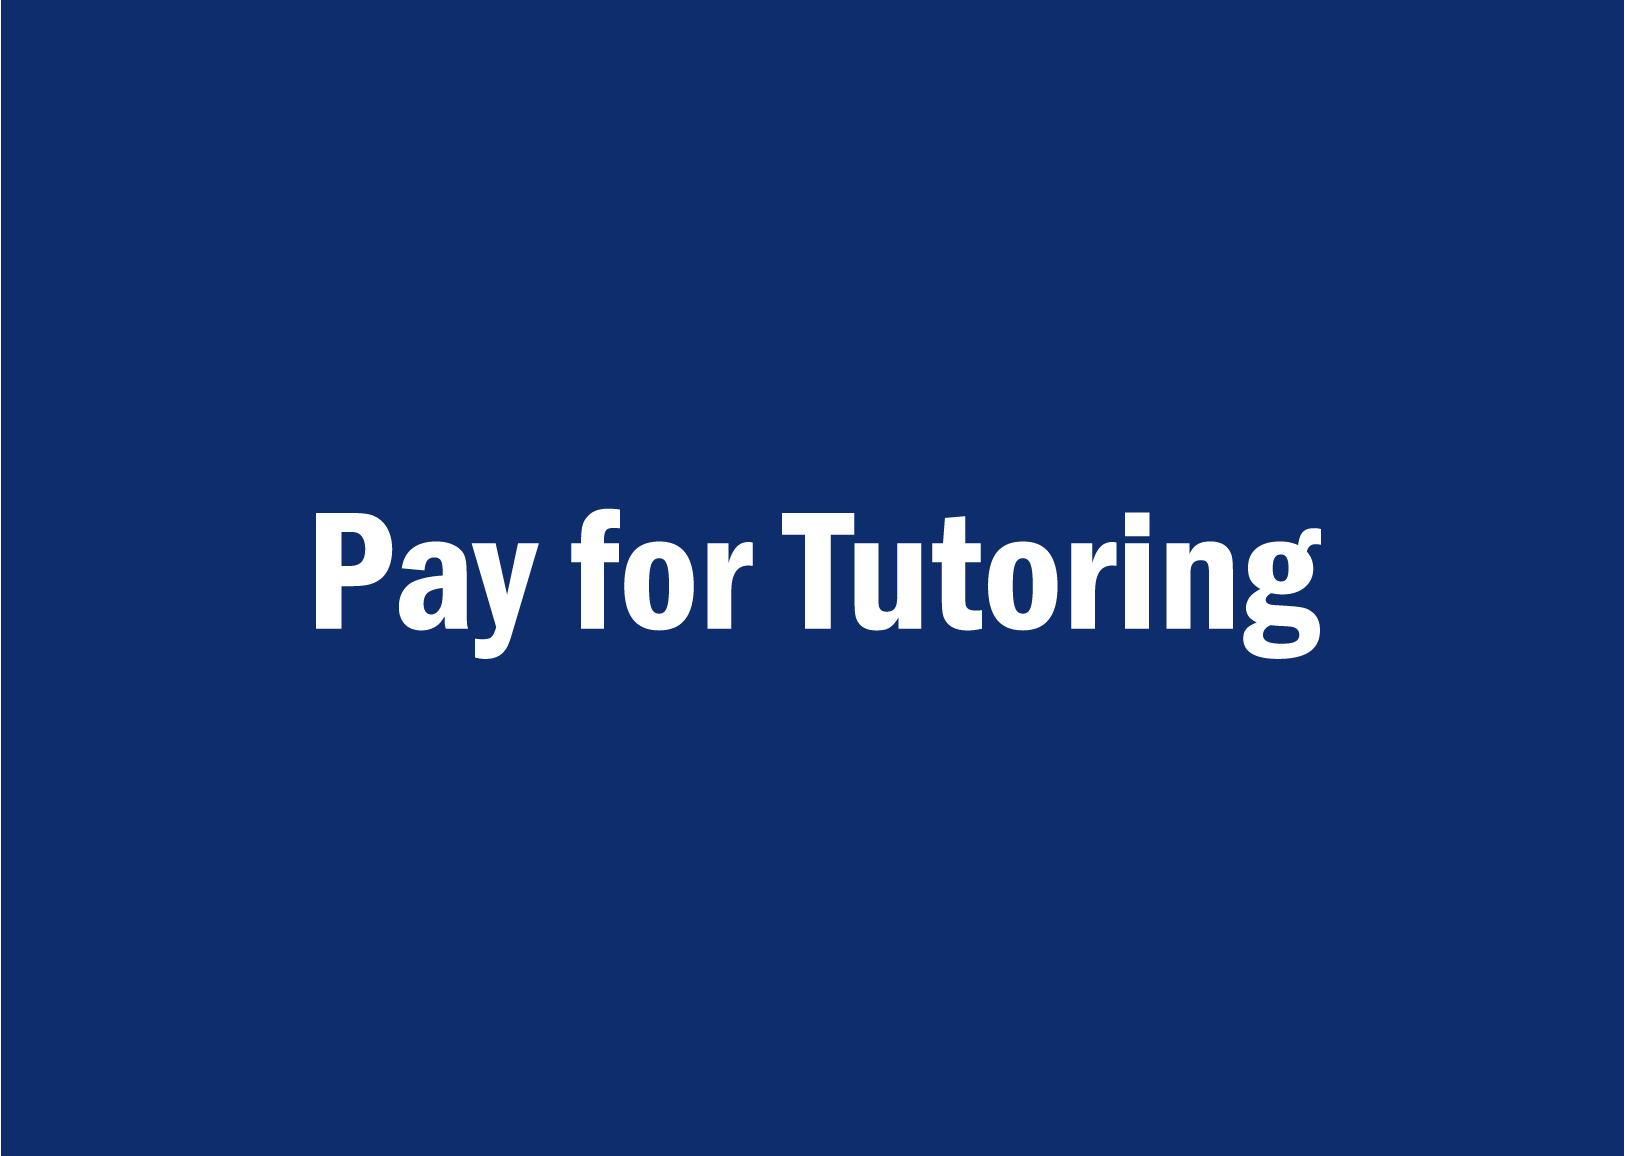 pay for tutoring